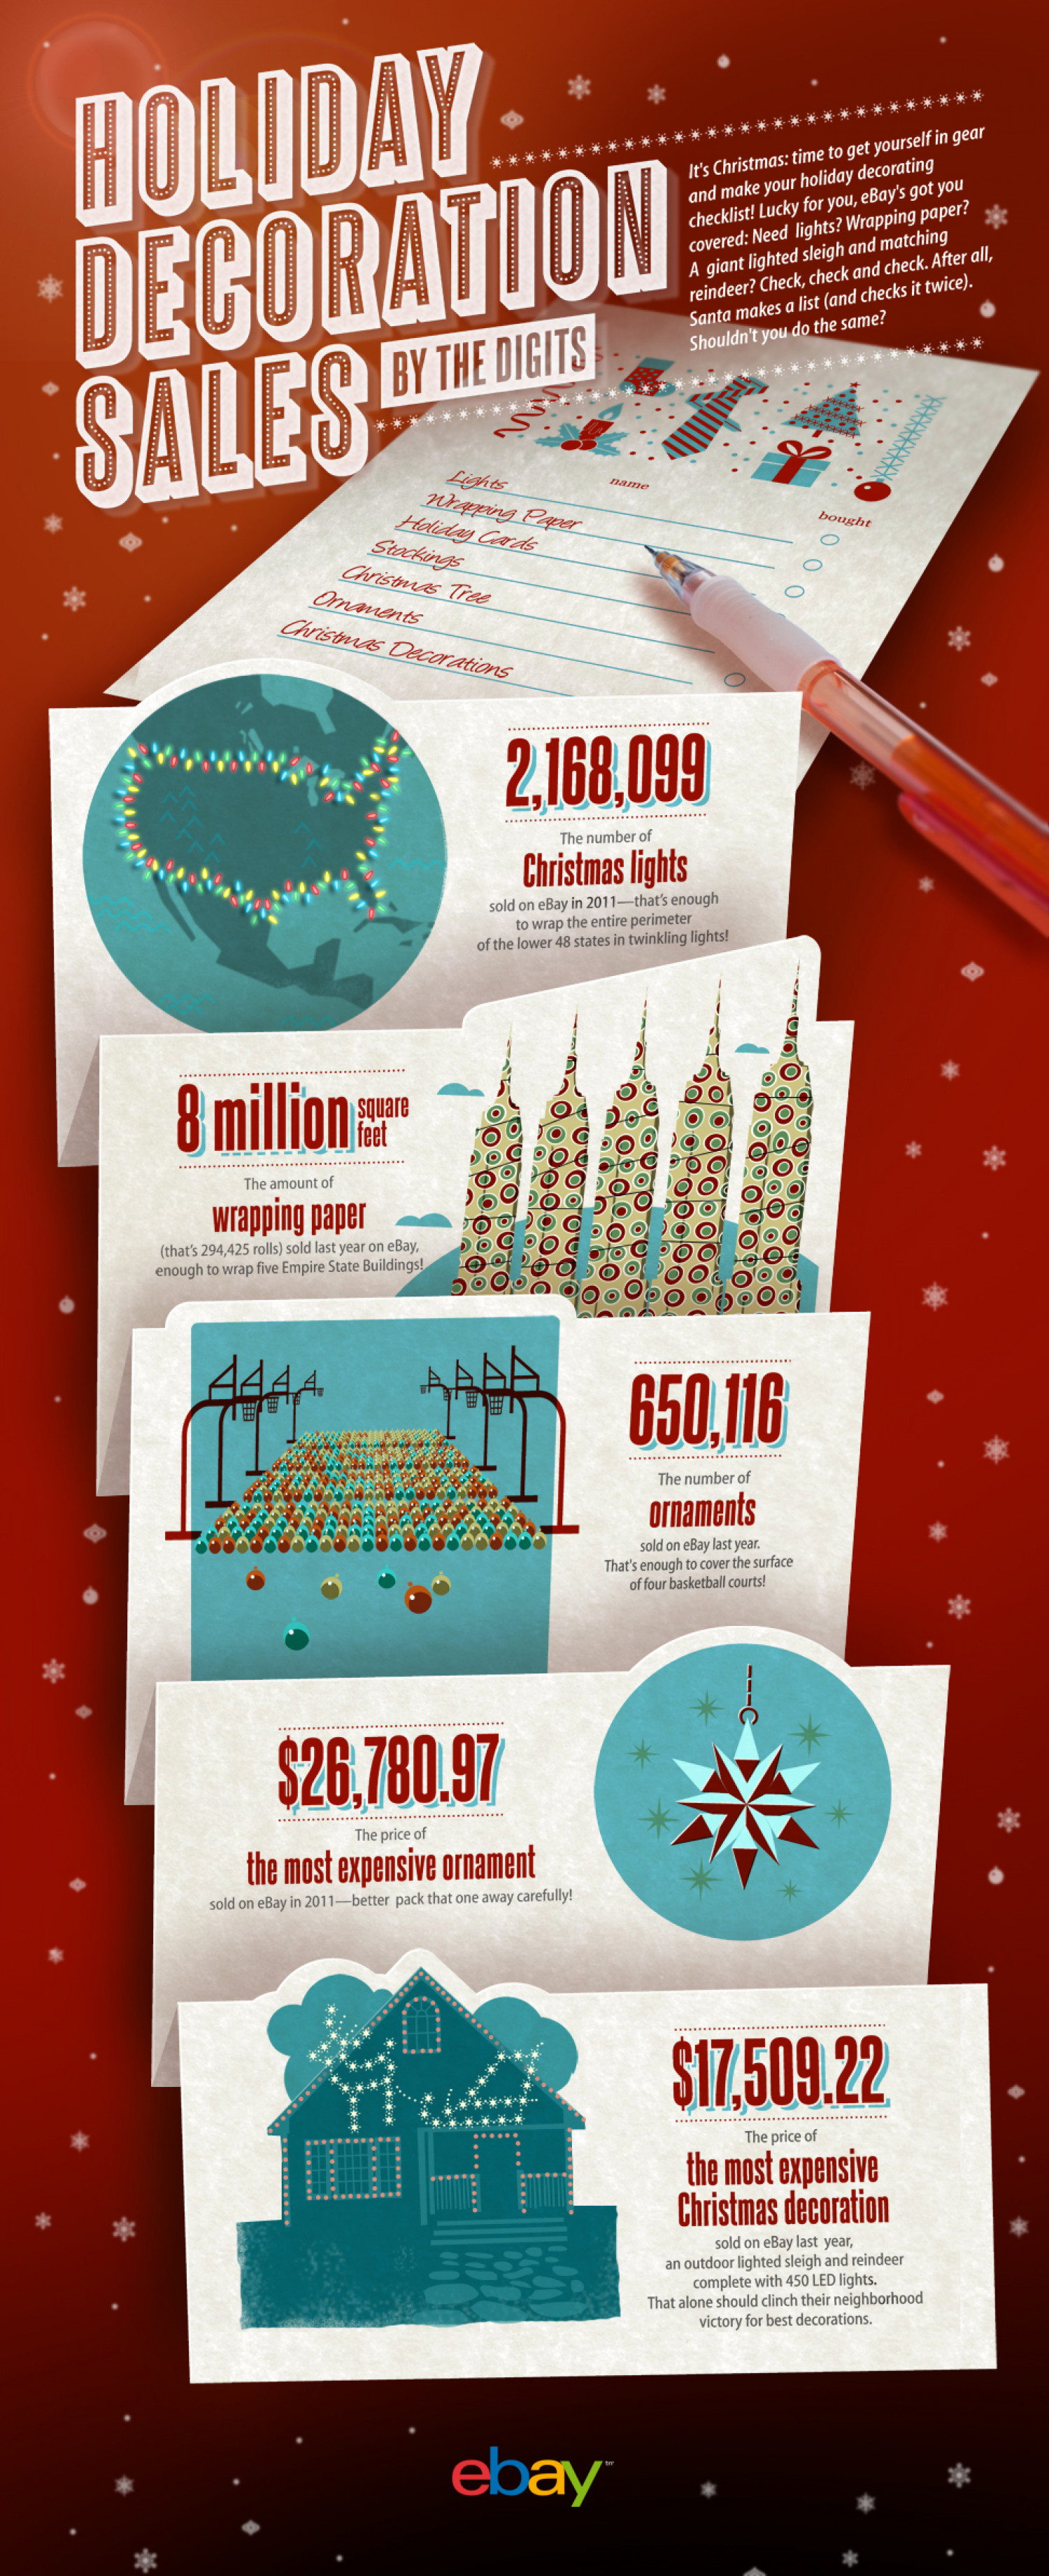 Holiday Decoration Sales by the Digits Infographic